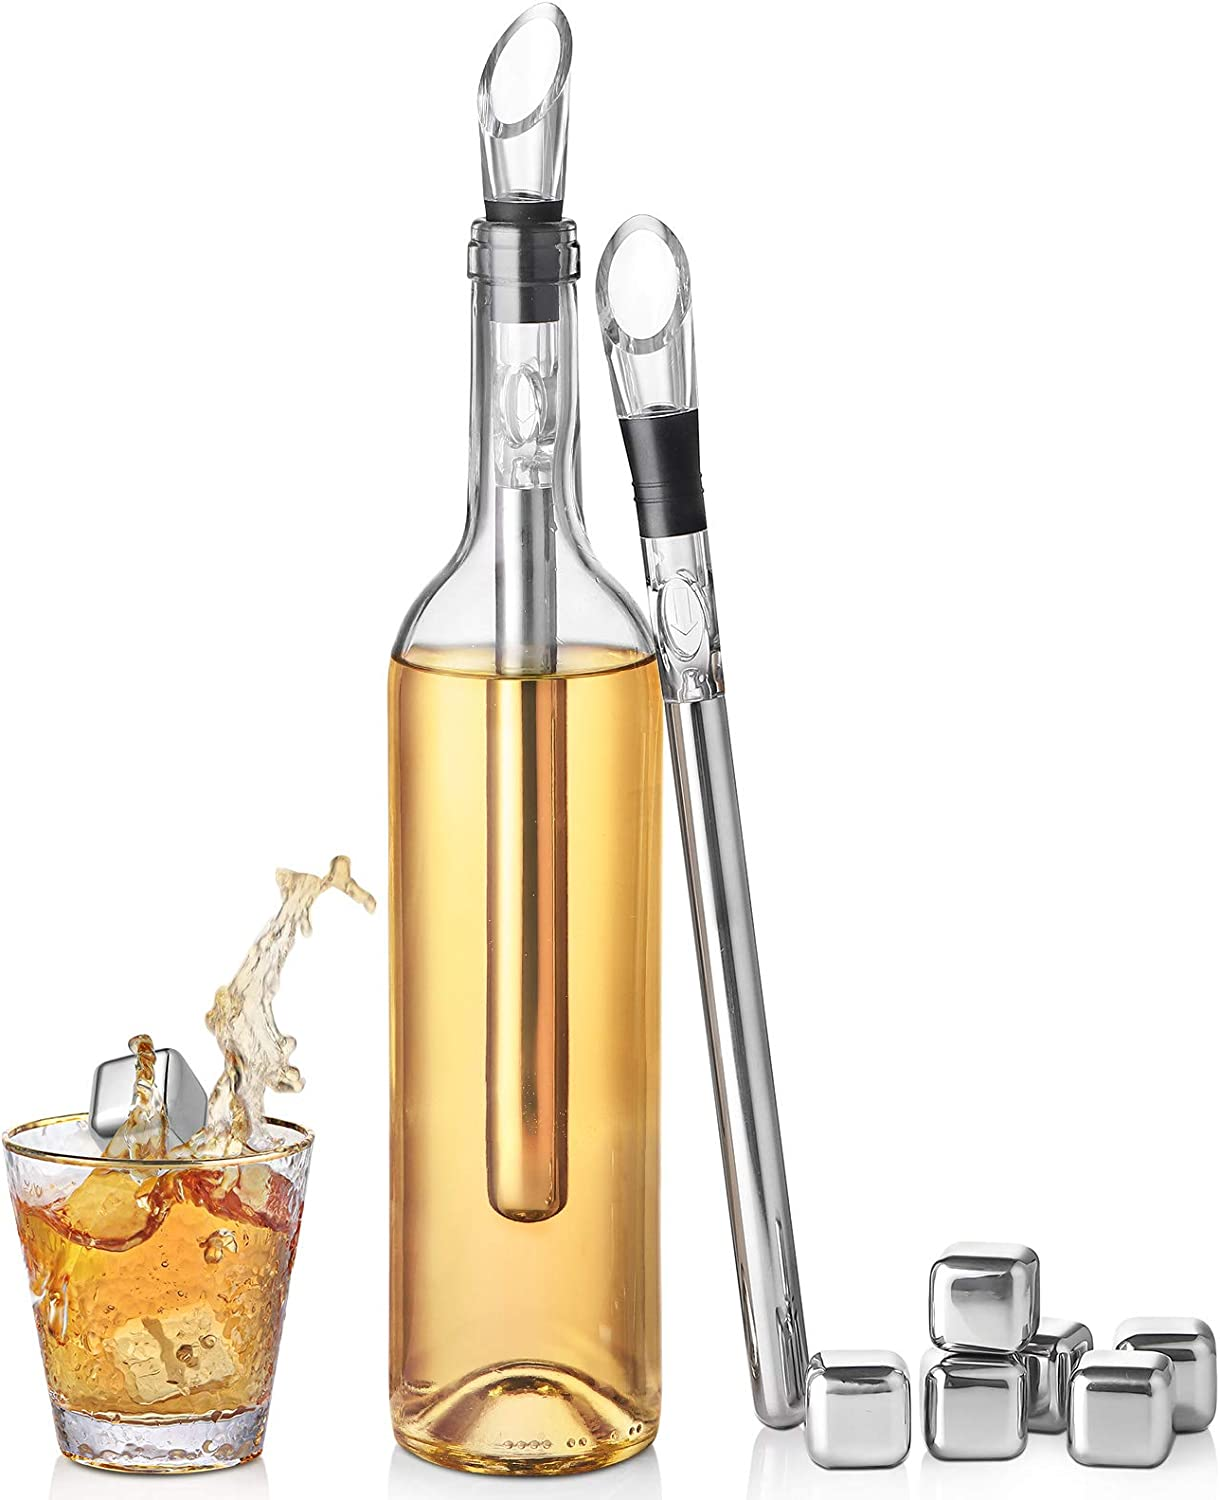 Wine Chiller 3-in-1 Stainless Steel Translated safety Stick Cooler wi Bottle